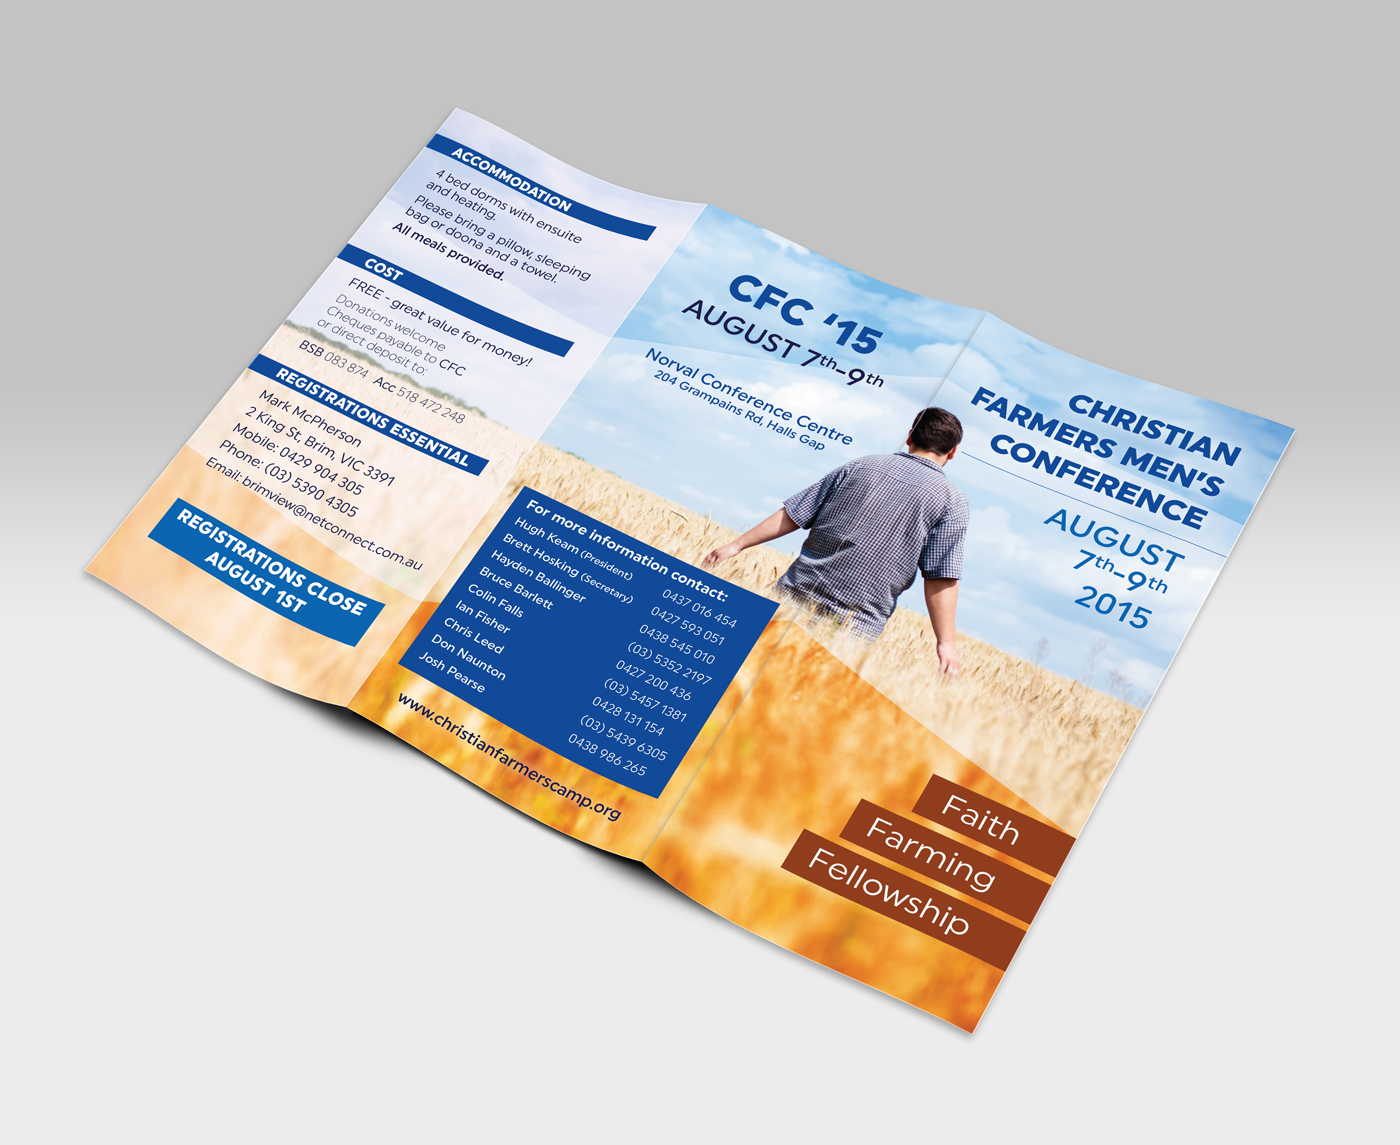 Bi-fold information brochure for Christians Farmers Men's Conference 2015.